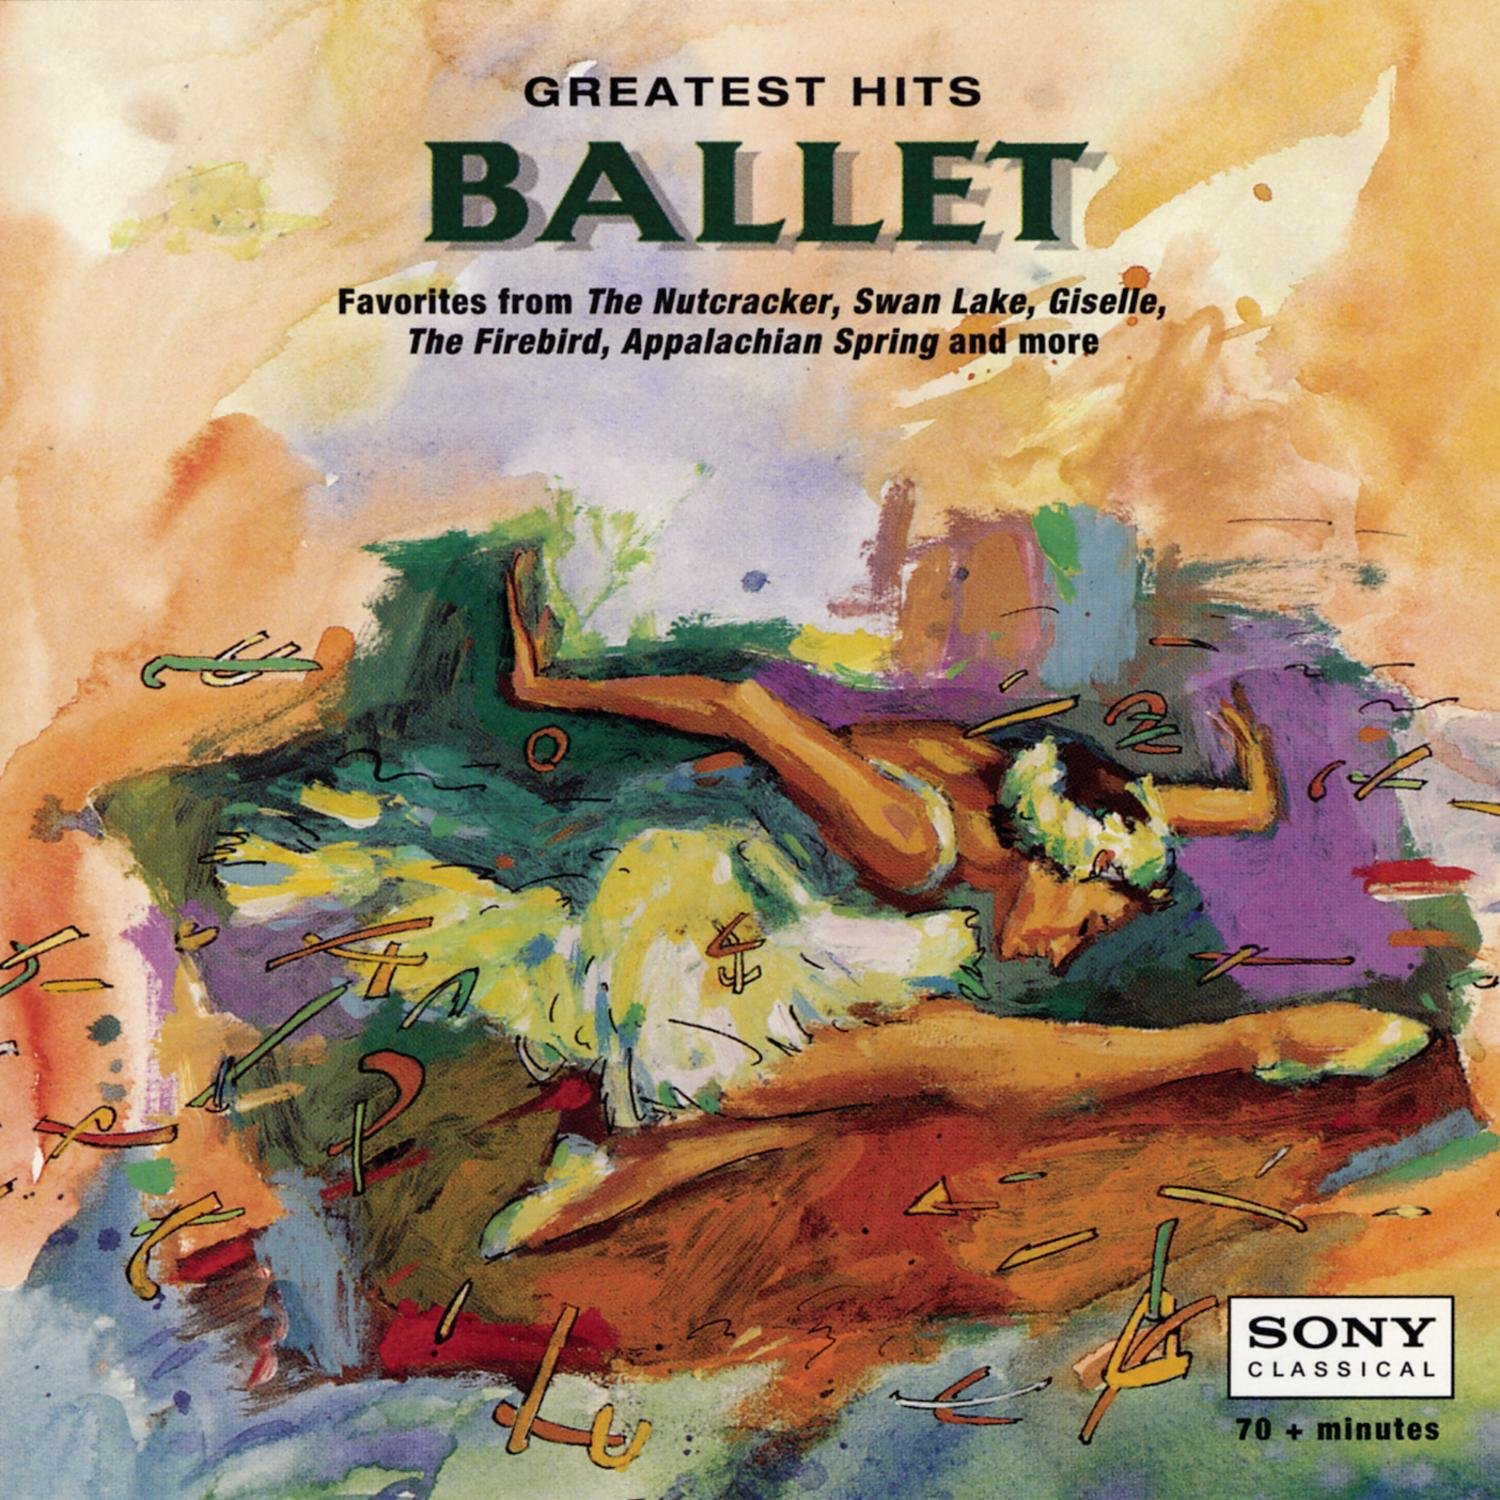 Greatest Hits - Ballet by Sony